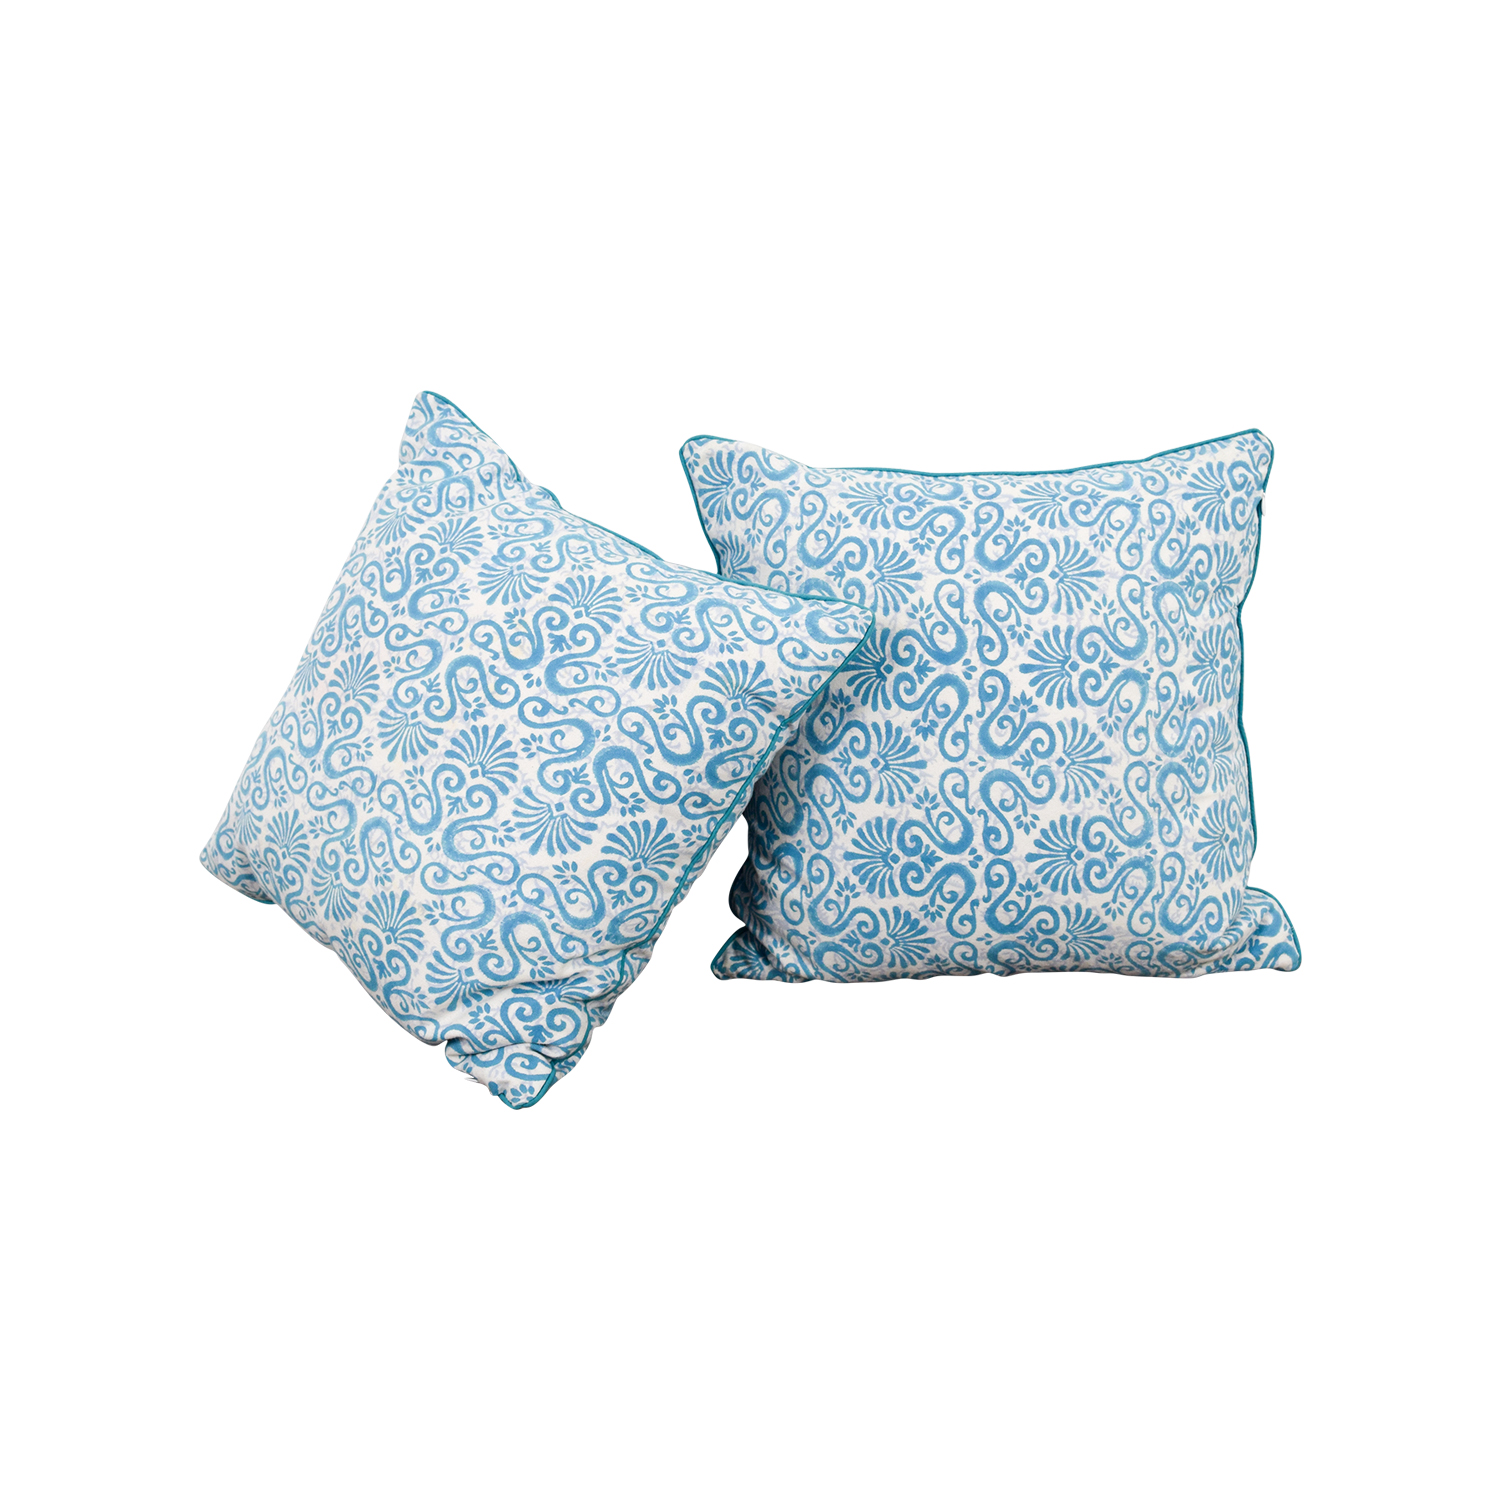 buy Roller Rabbit Roller Rabbit Blue and White Scroll Pillows online